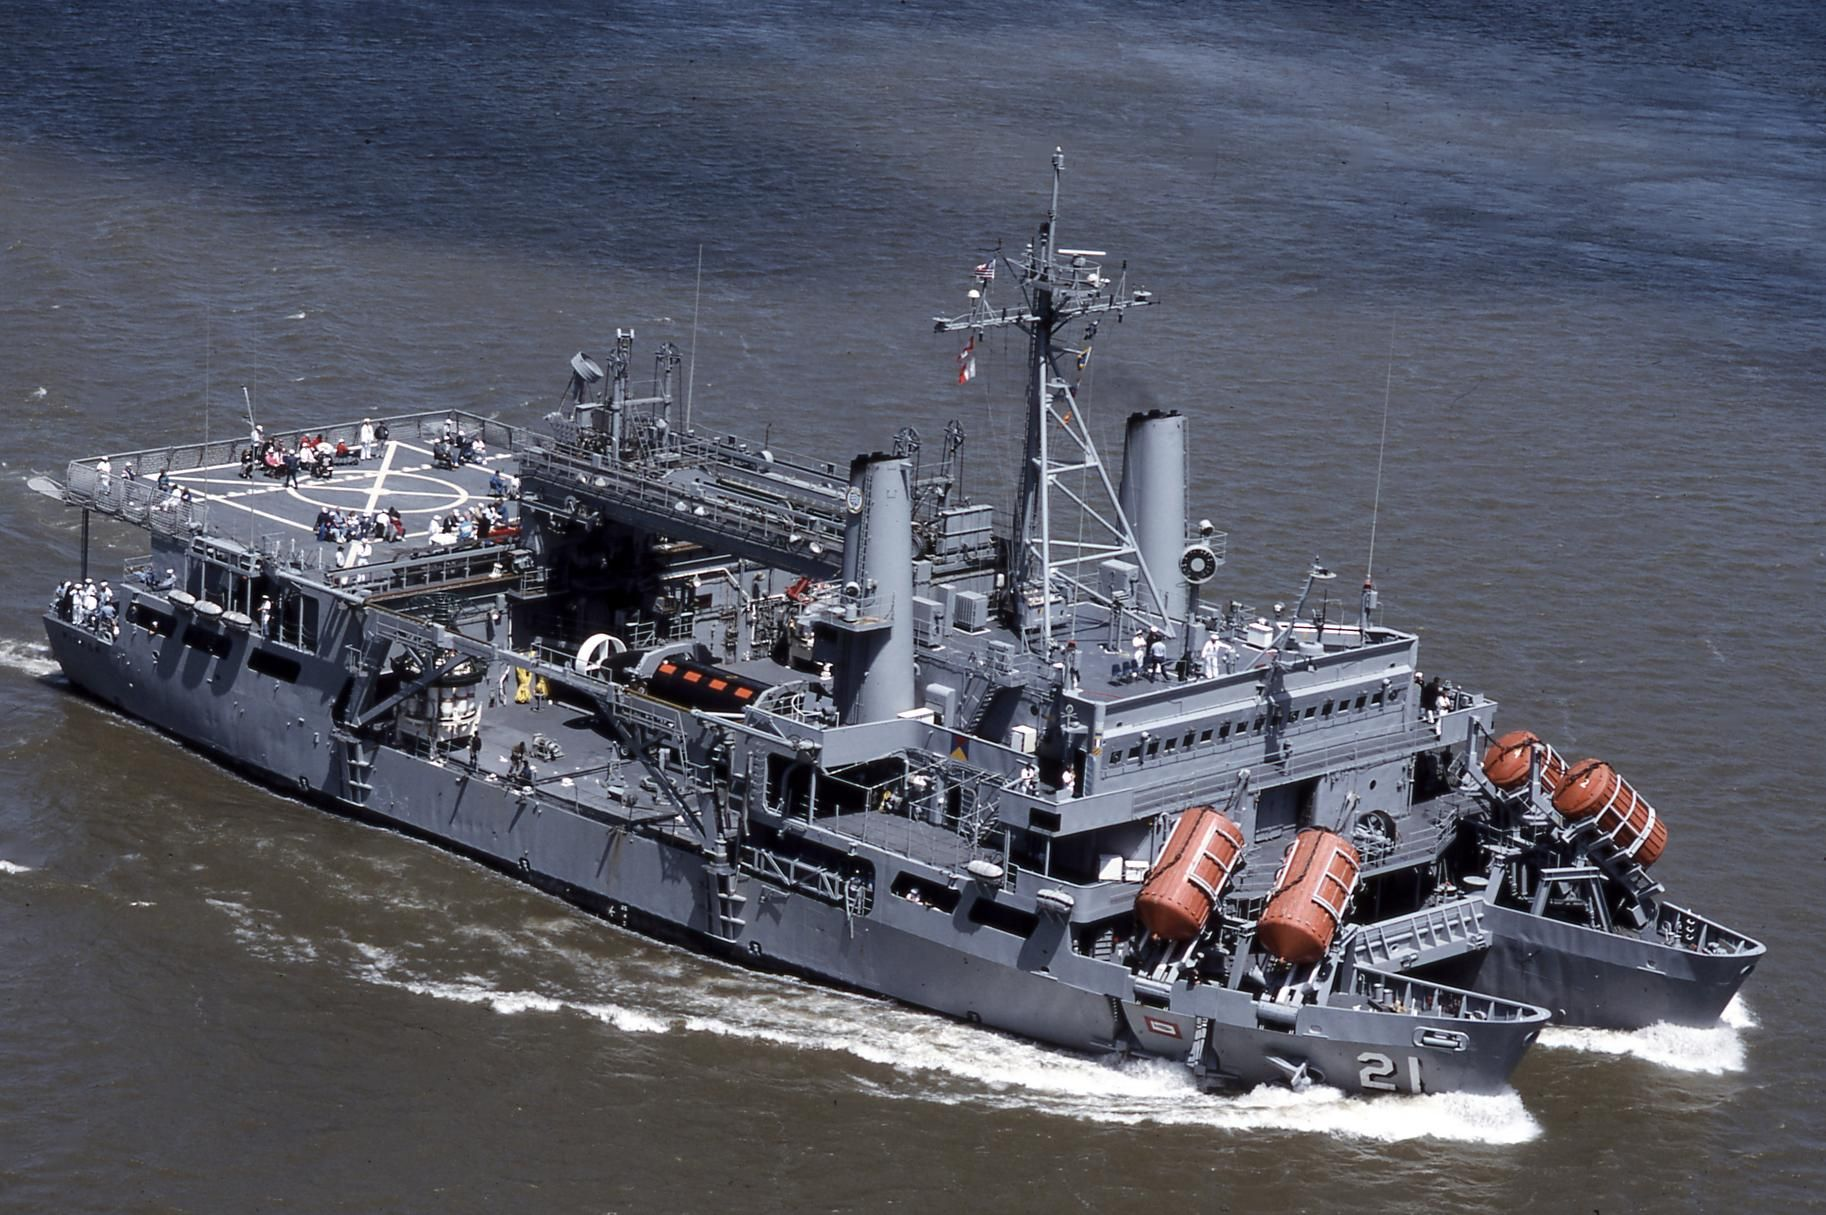 The uss pigeon asr 21 a submarine rescue ship note the dsrv